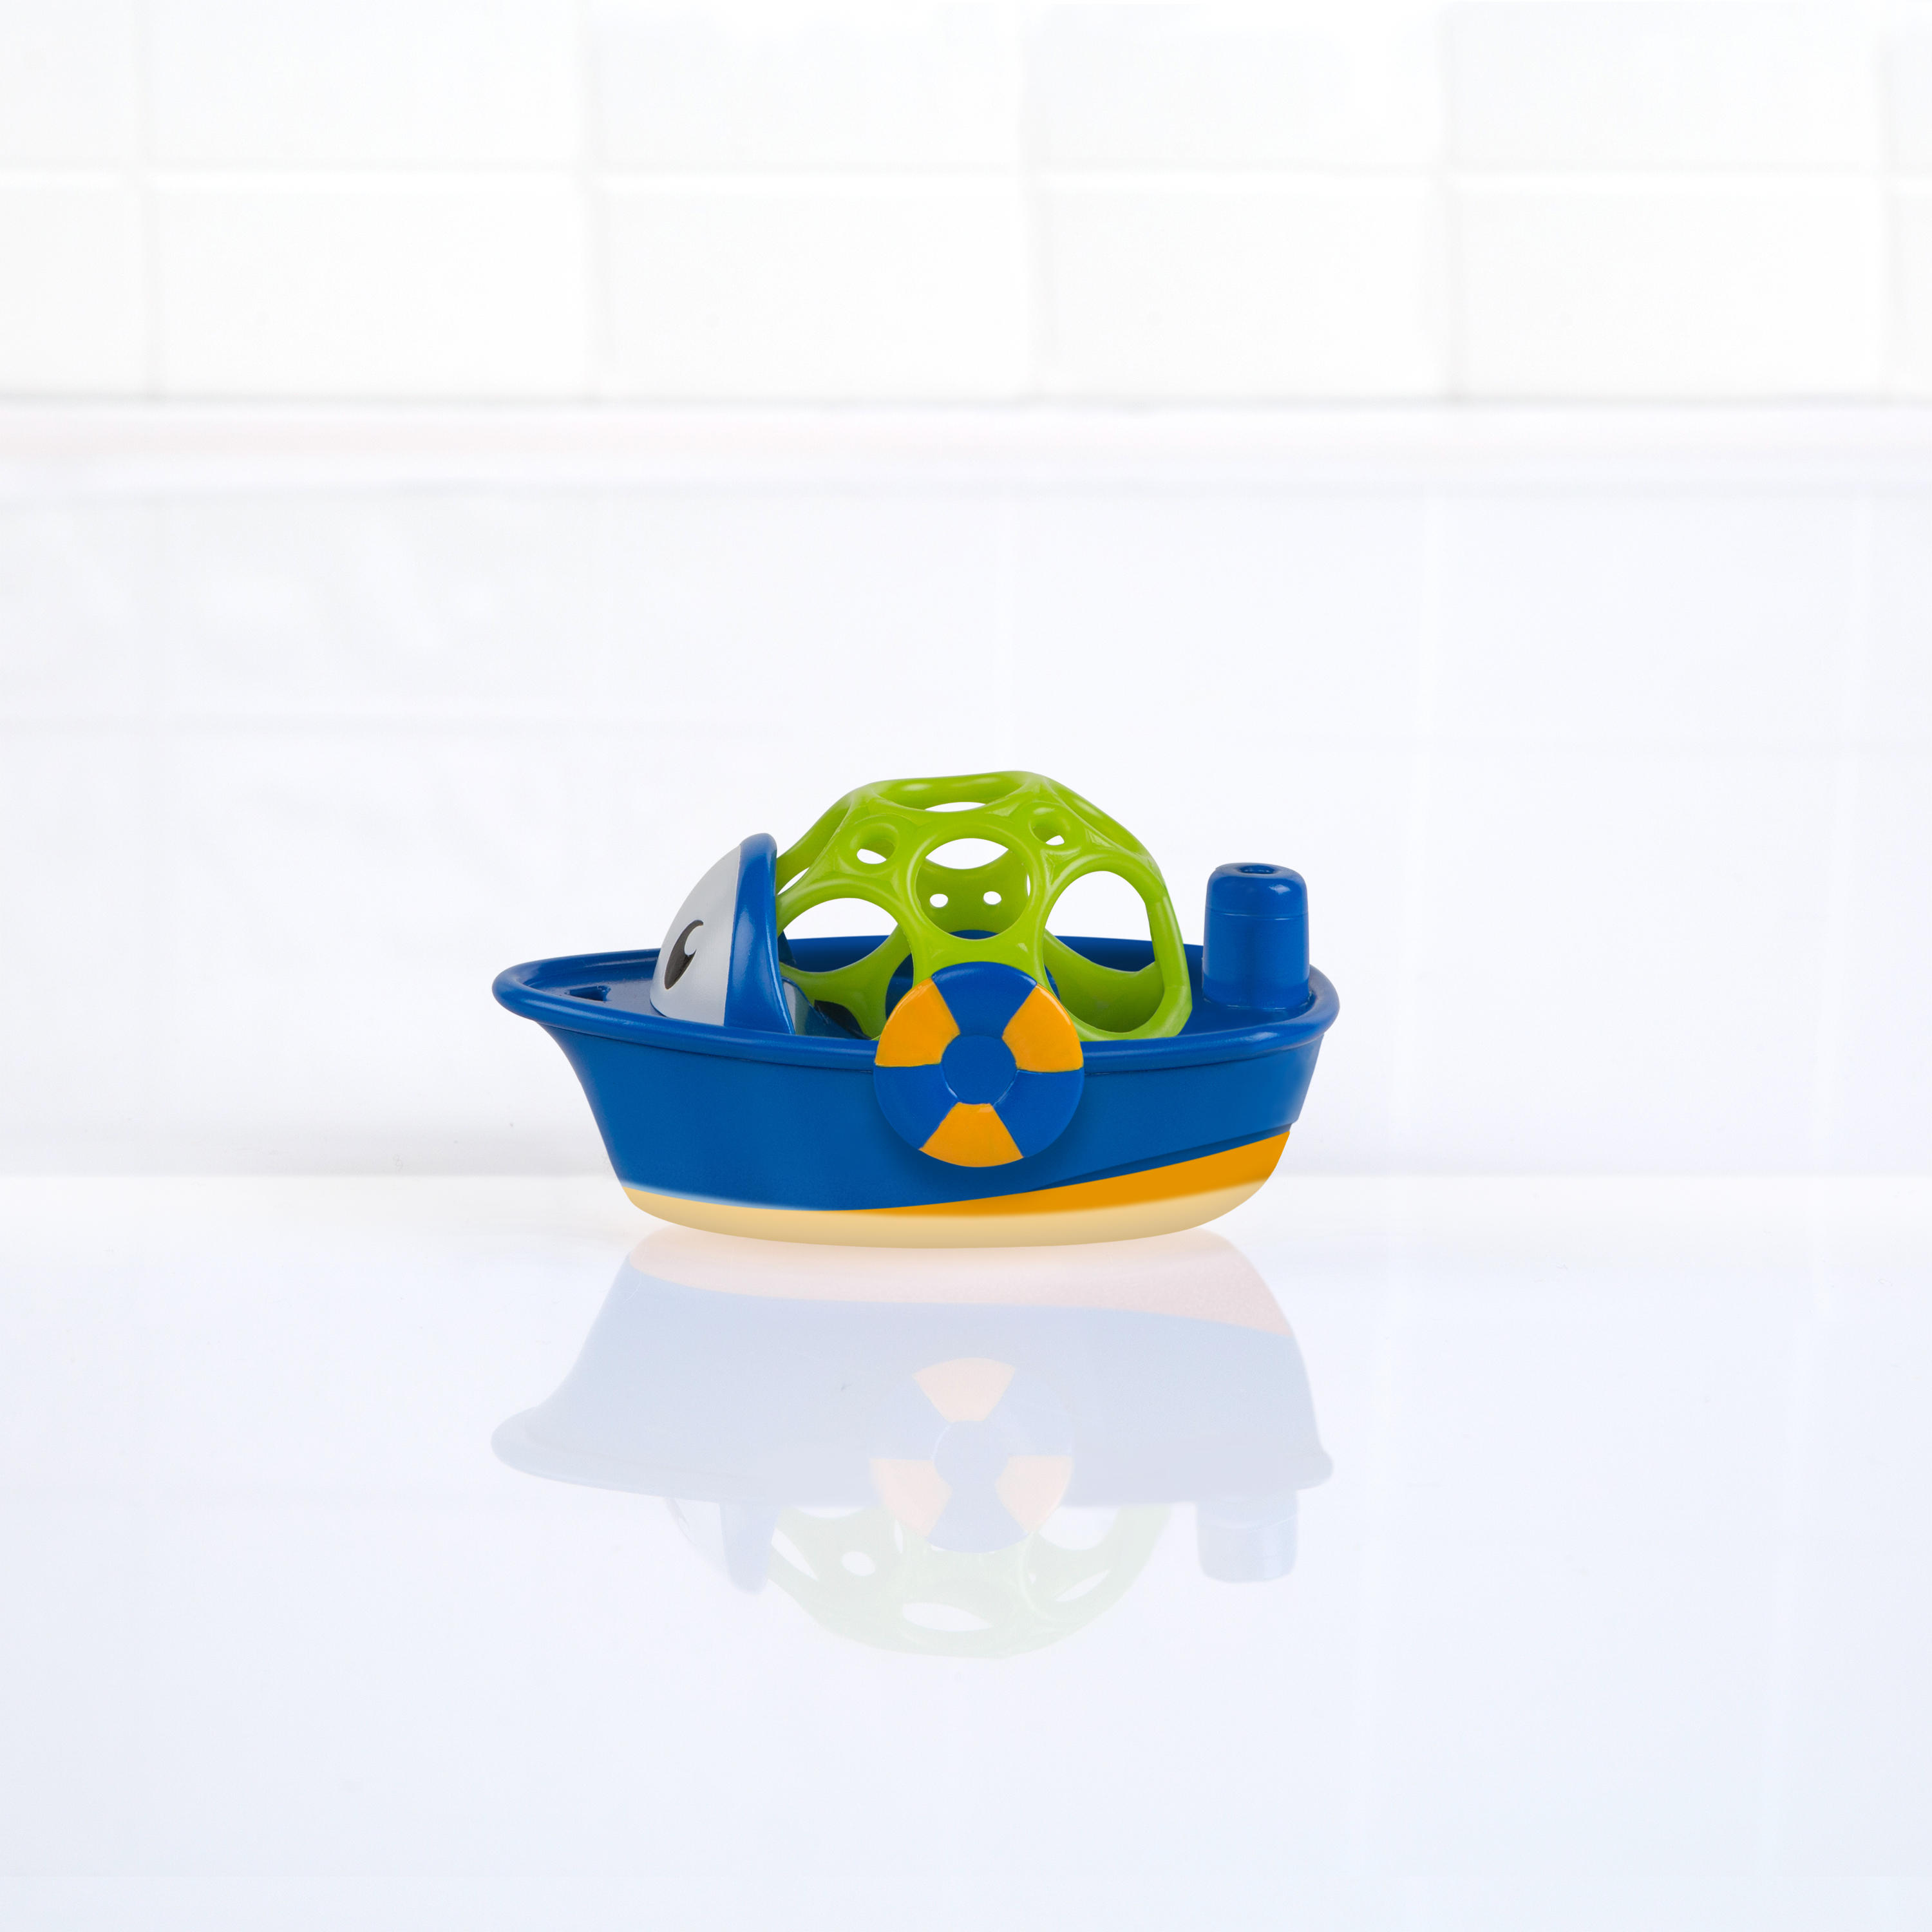 Grab & Splash Boats